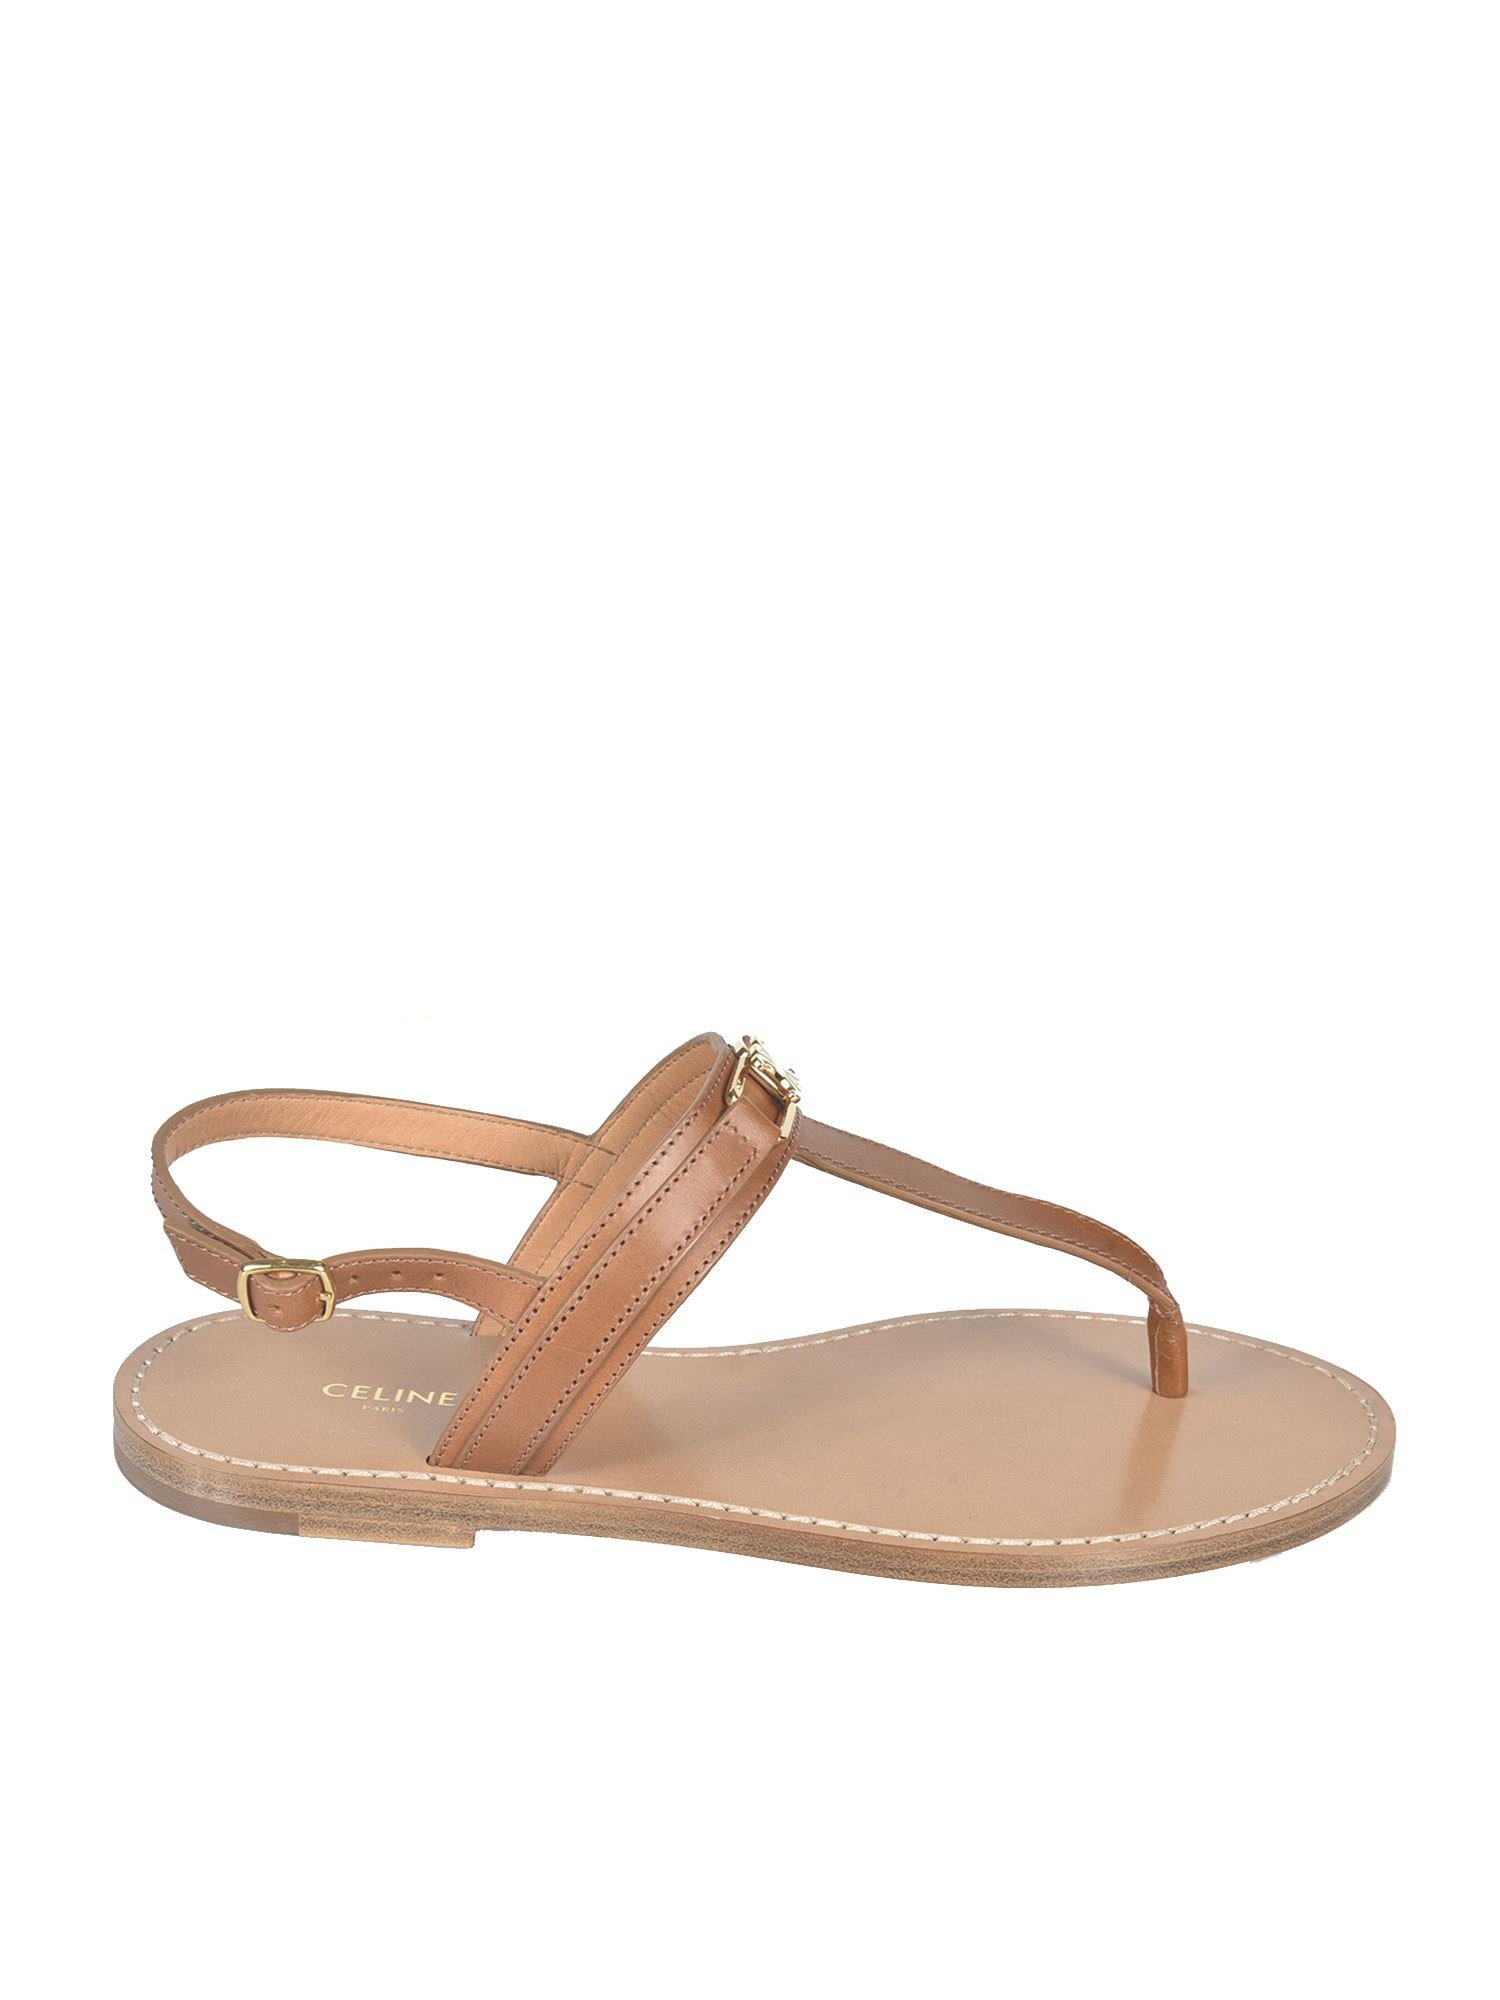 Celine TRIOMPHE SANDALS IN TAN COLOR